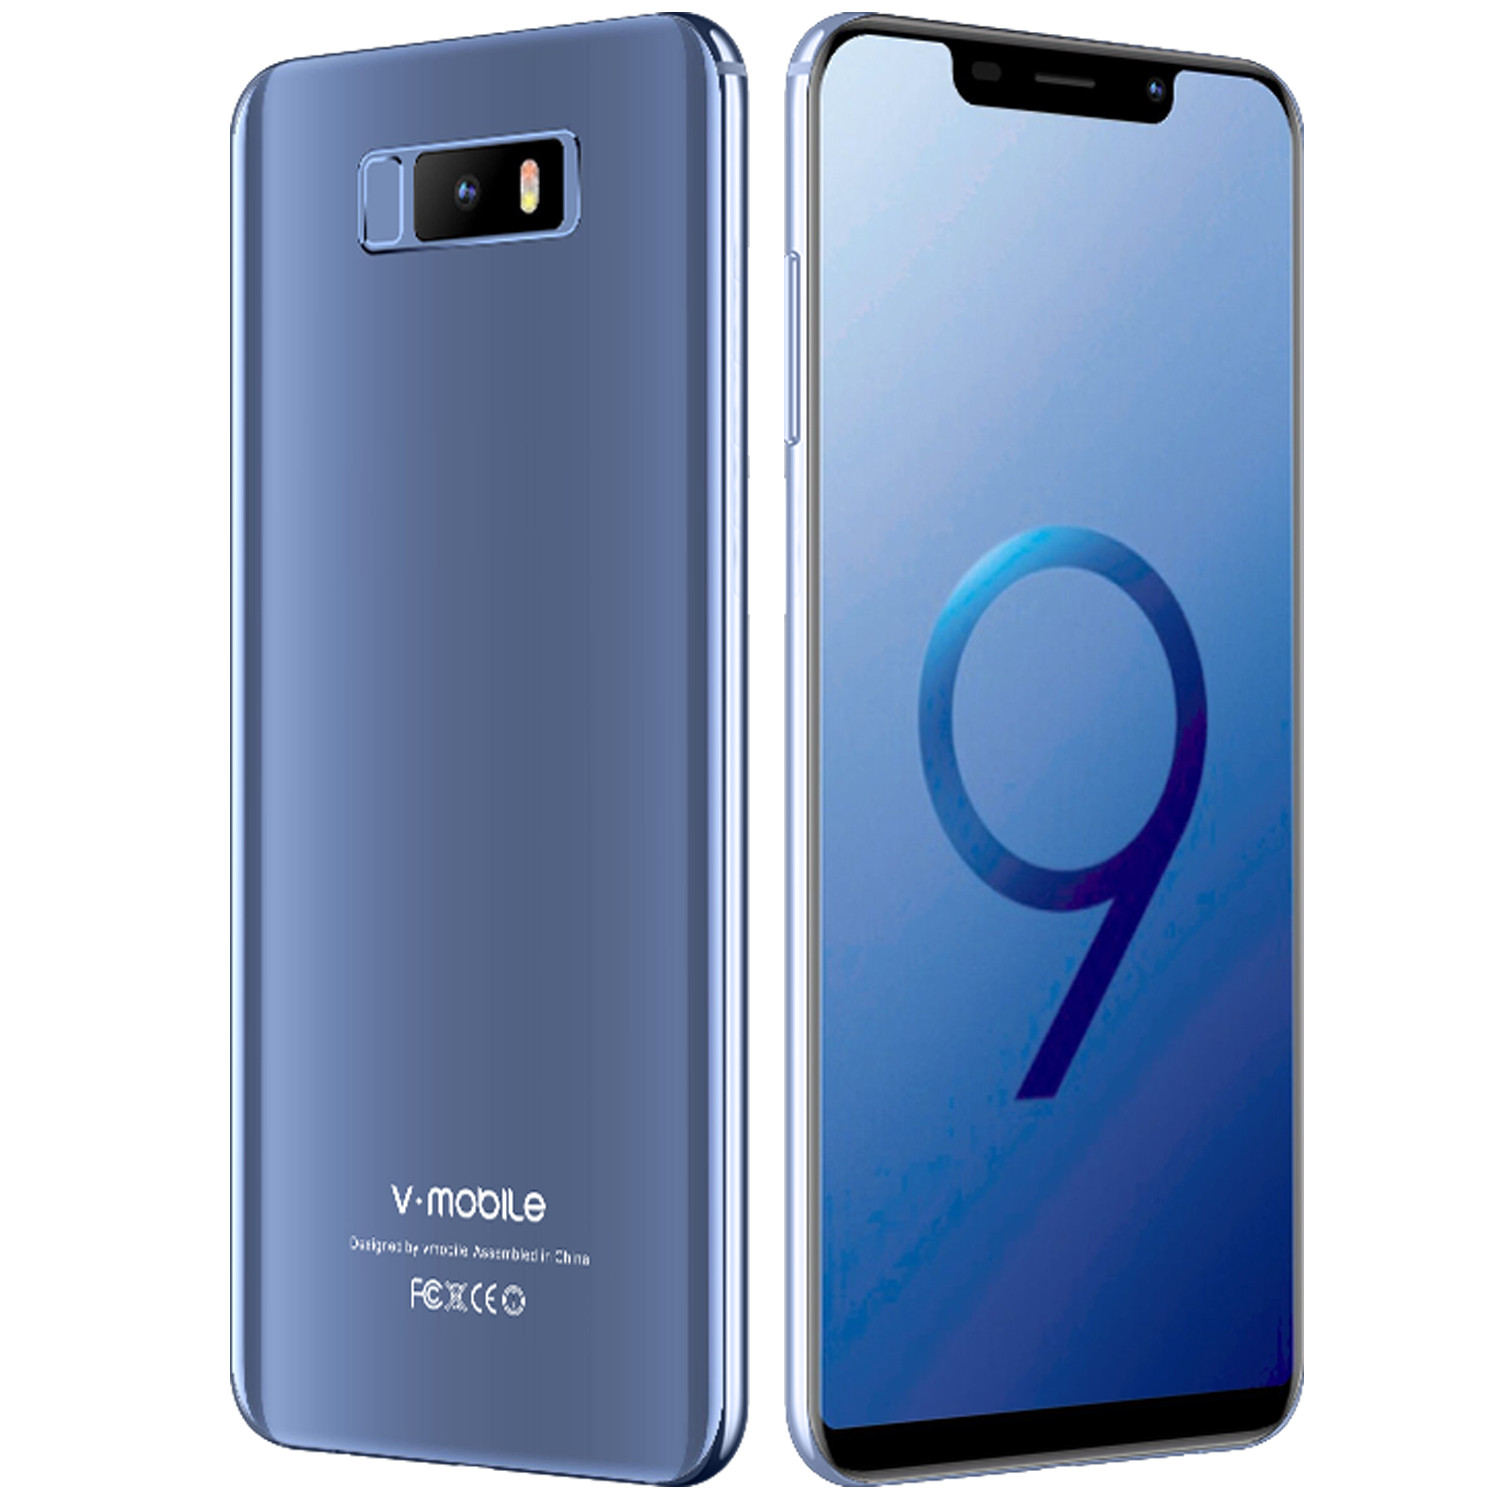 TEENO Vmobile Note 9 Mobile Phone Android 7 0 5 84 19 9 Full Screen 3GB